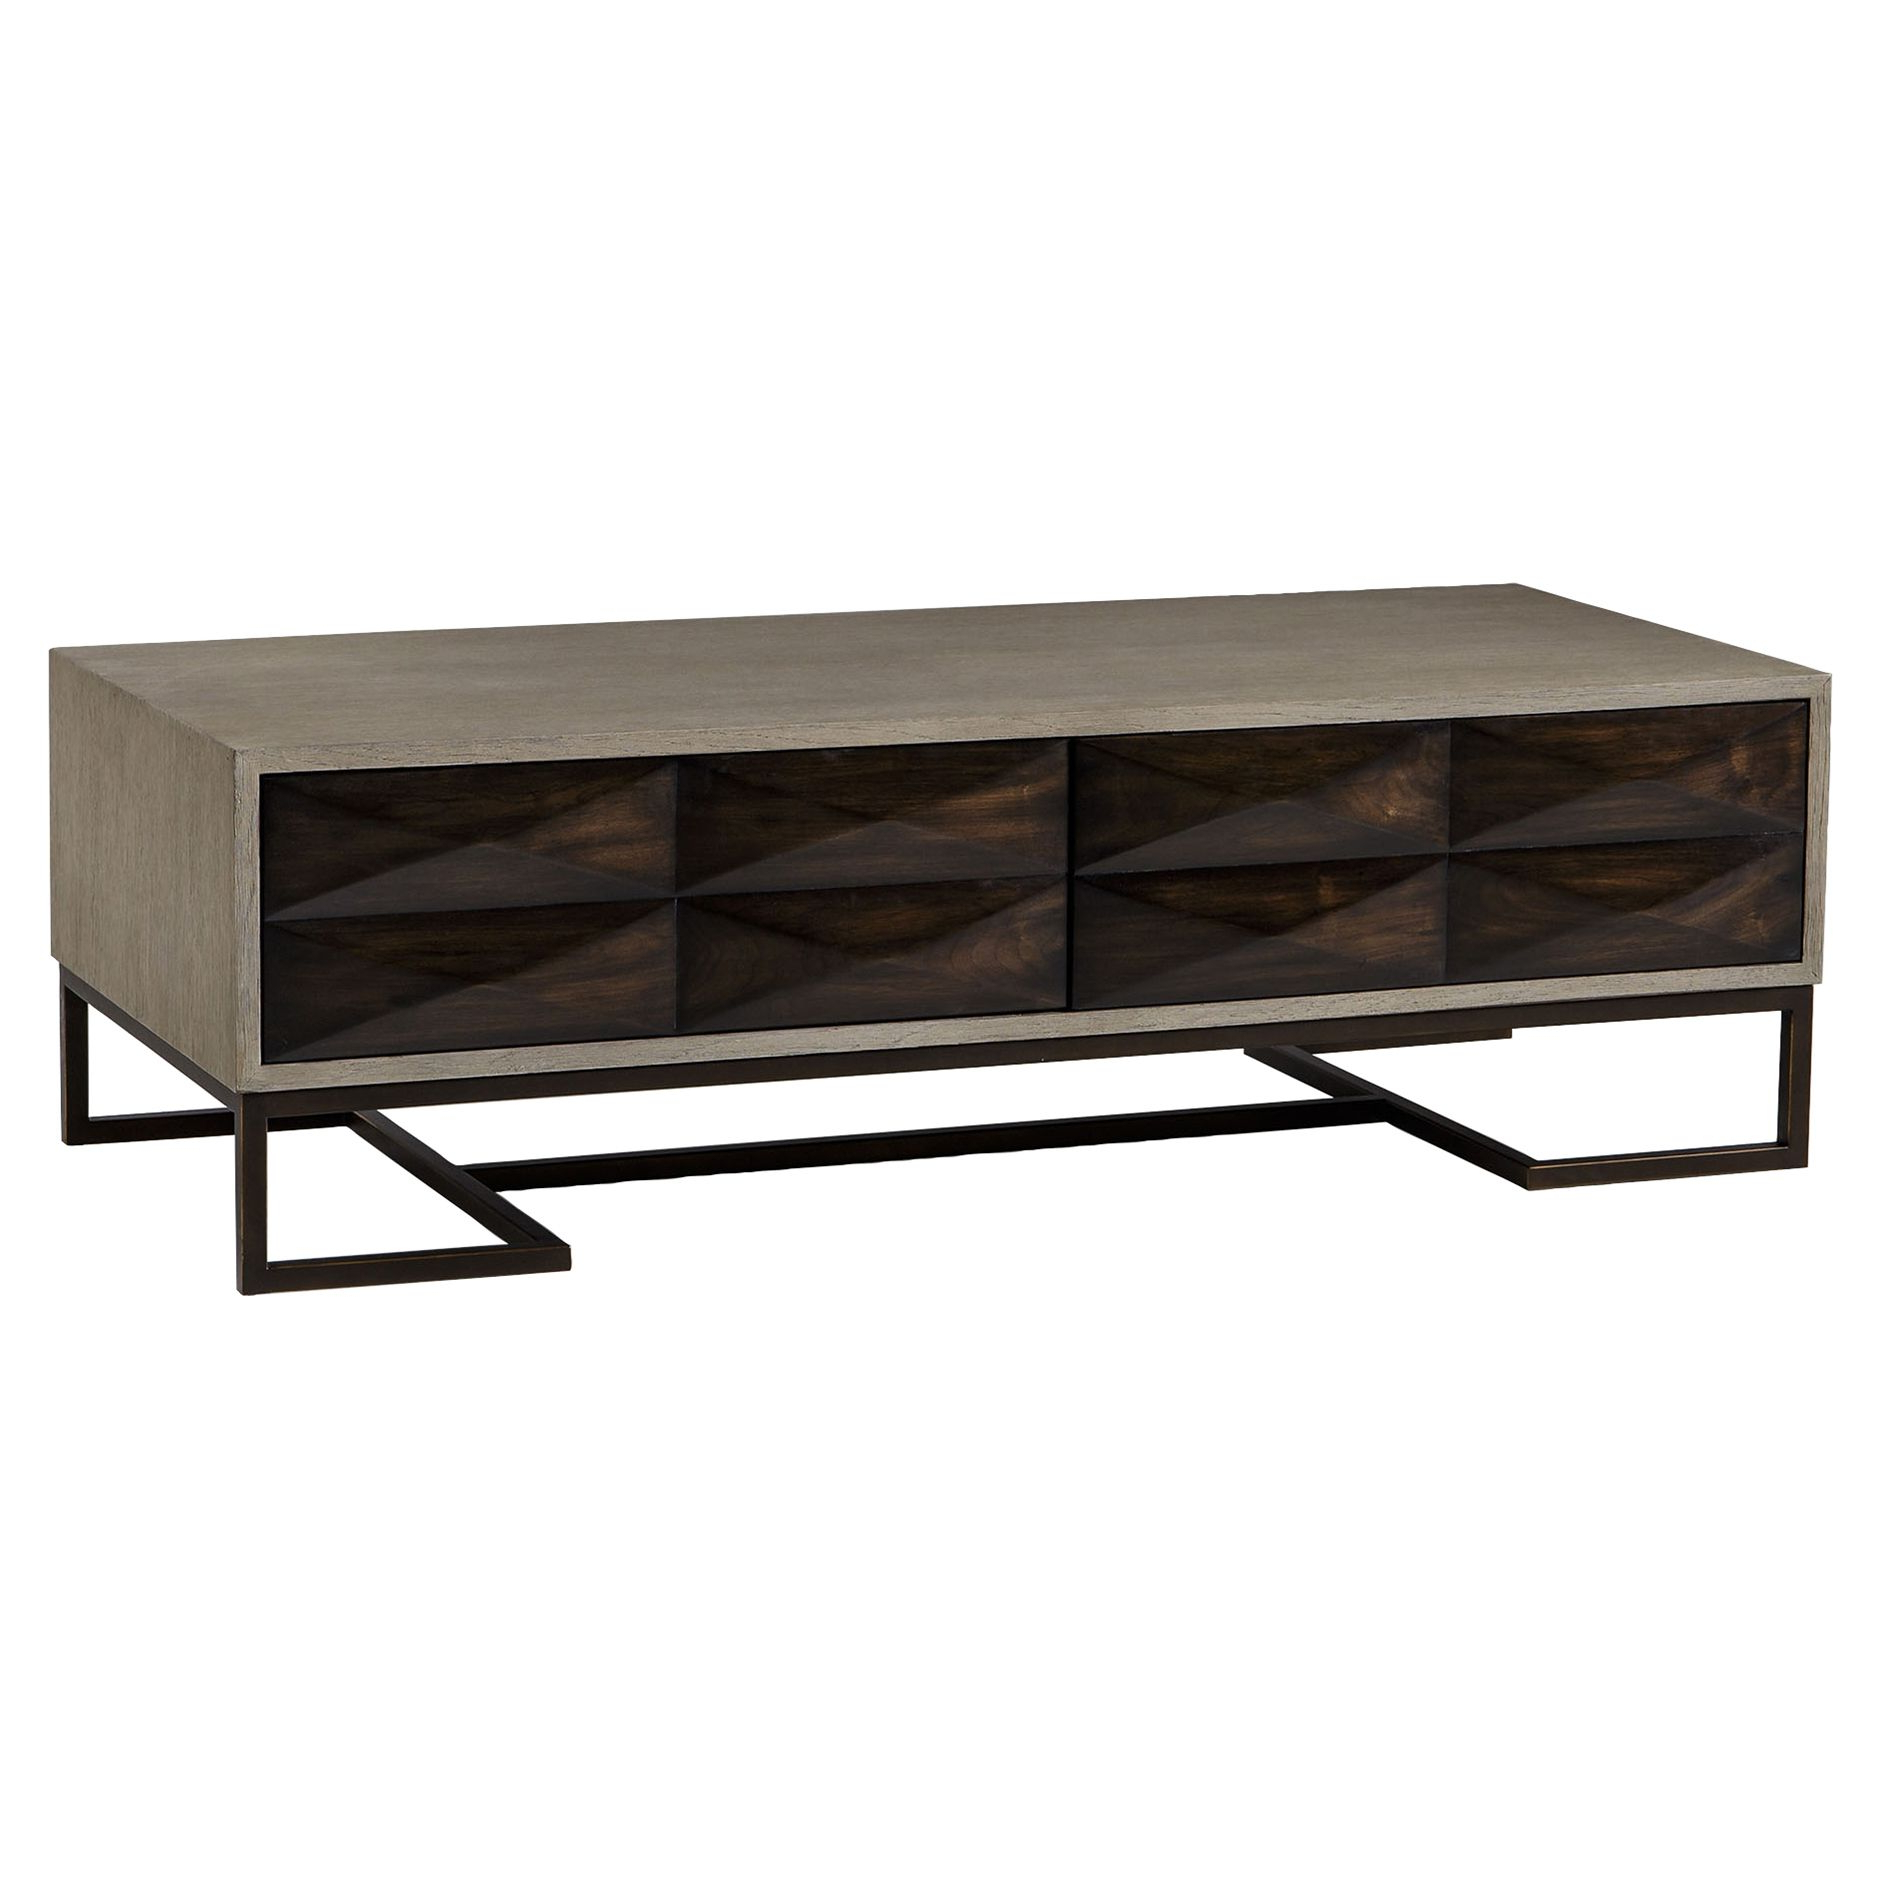 Casey Industrial Loft Open Grey Grain 2 Drawer Cofee Table In 2018 With Regard To Well Known Natural 2 Drawer Shutter Coffee Tables (View 2 of 20)